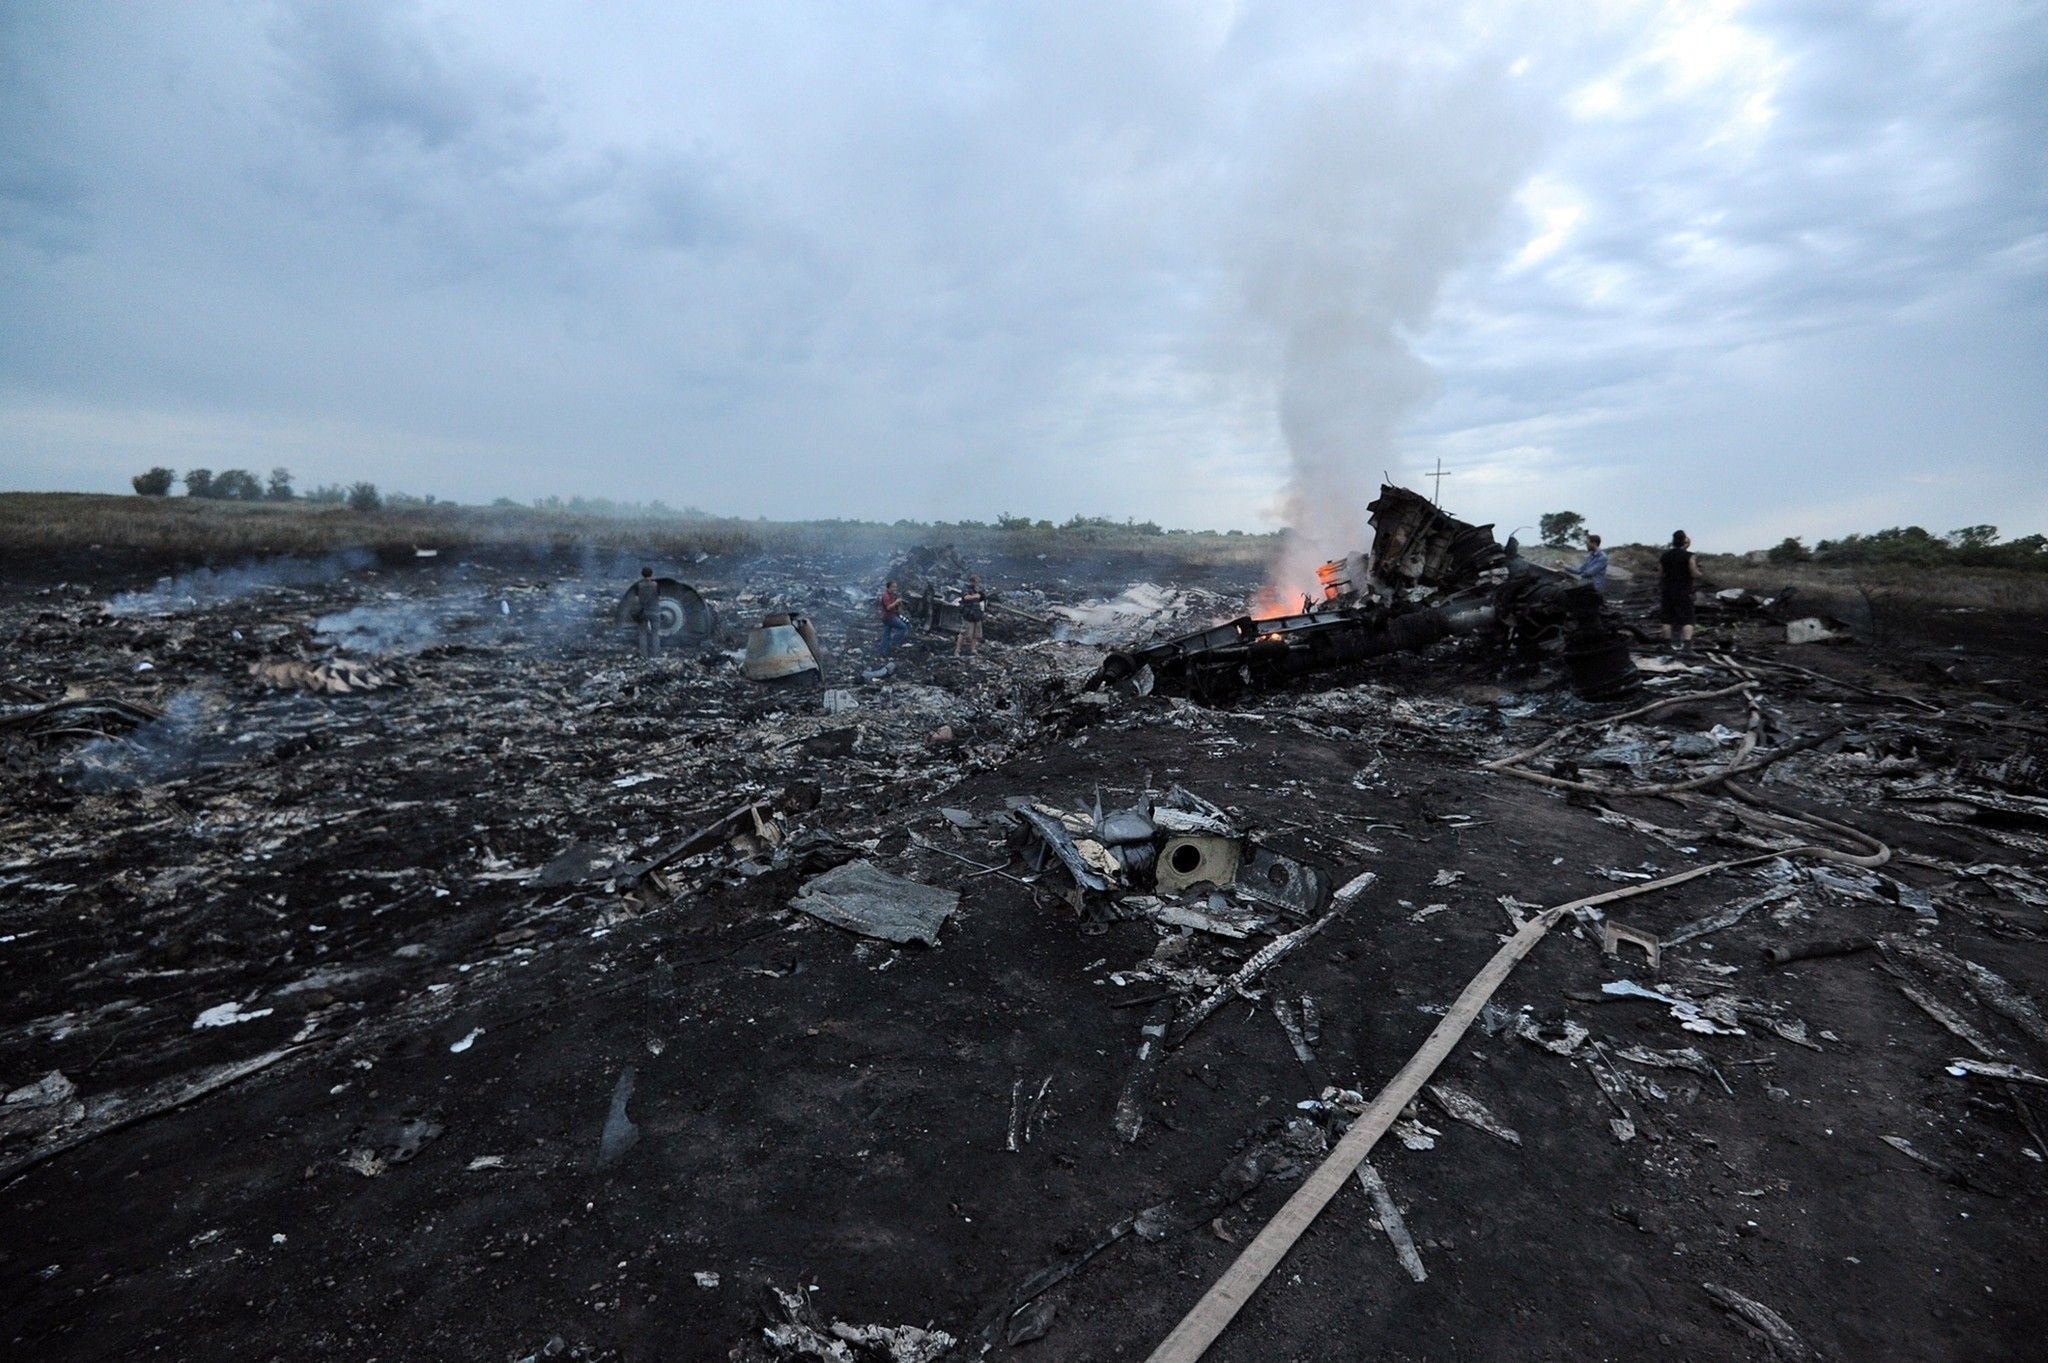 World leaders offer help after Malaysian plane goes down in Ukraine